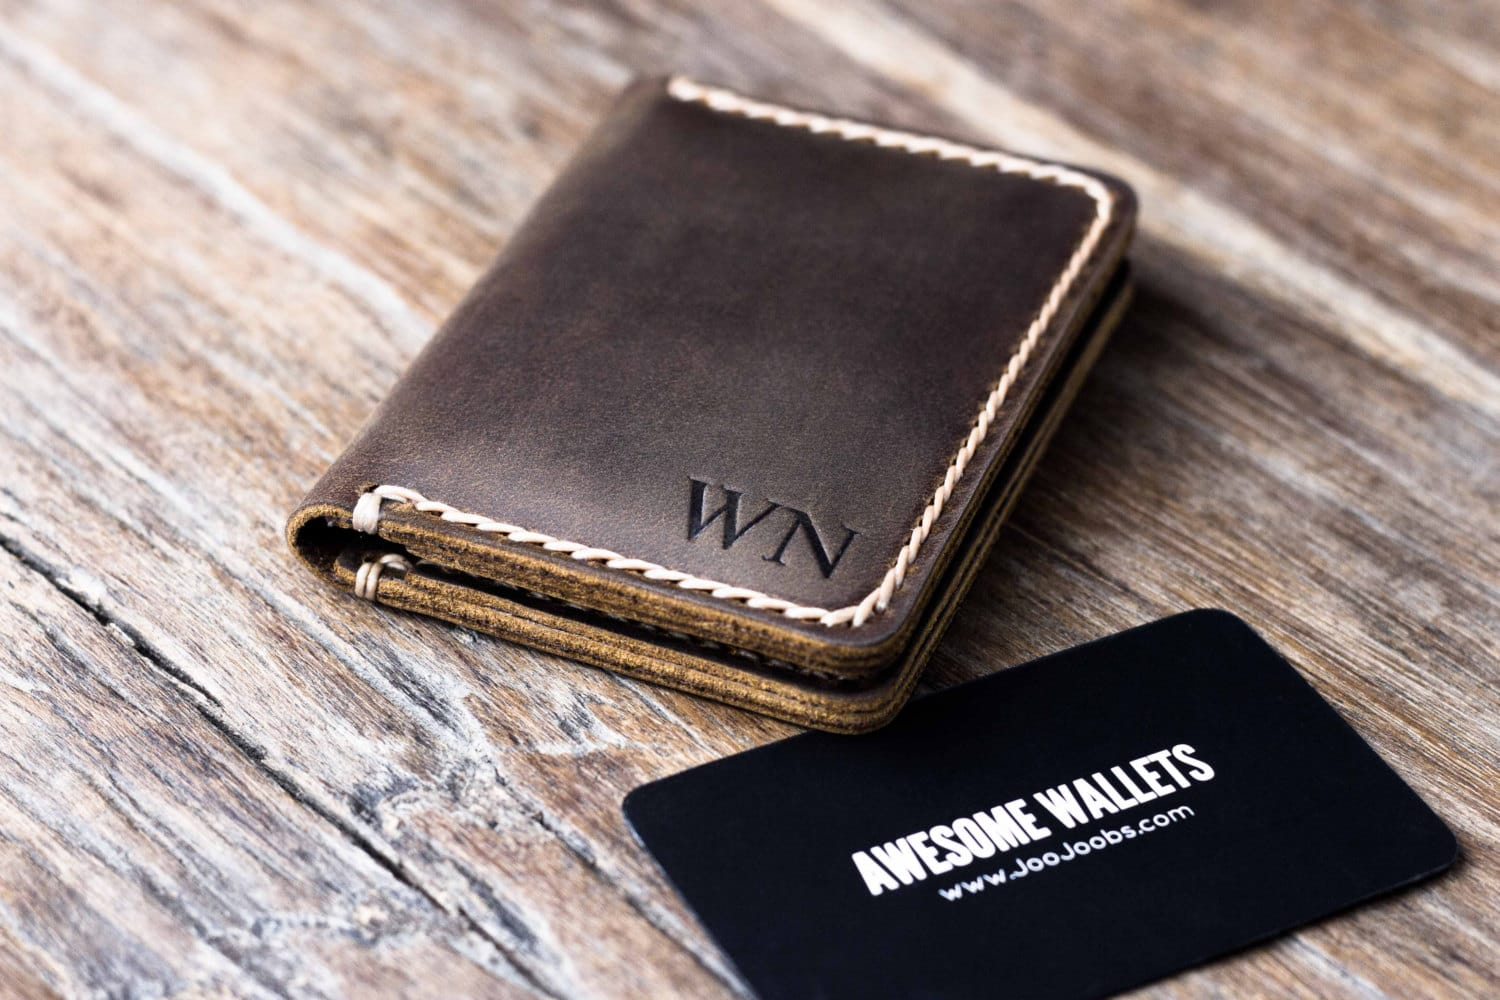 Credit Card Wallet For Men Personalized Joojoobs